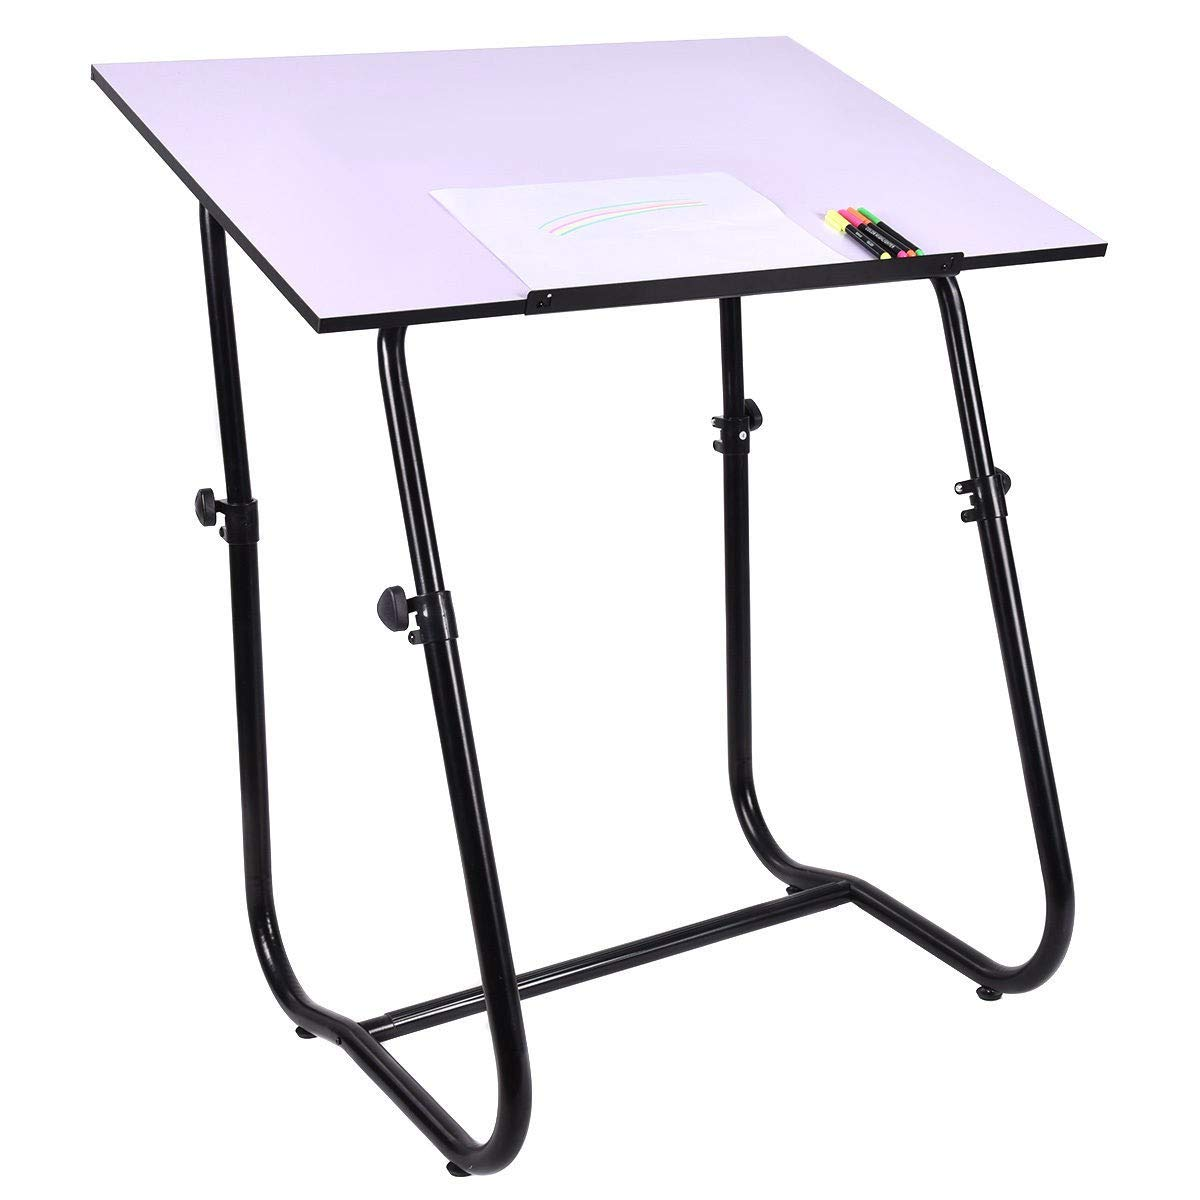 Drafting Table Art Workstation White Height Adjustable Large Surface Tabletop Furniture MD Group